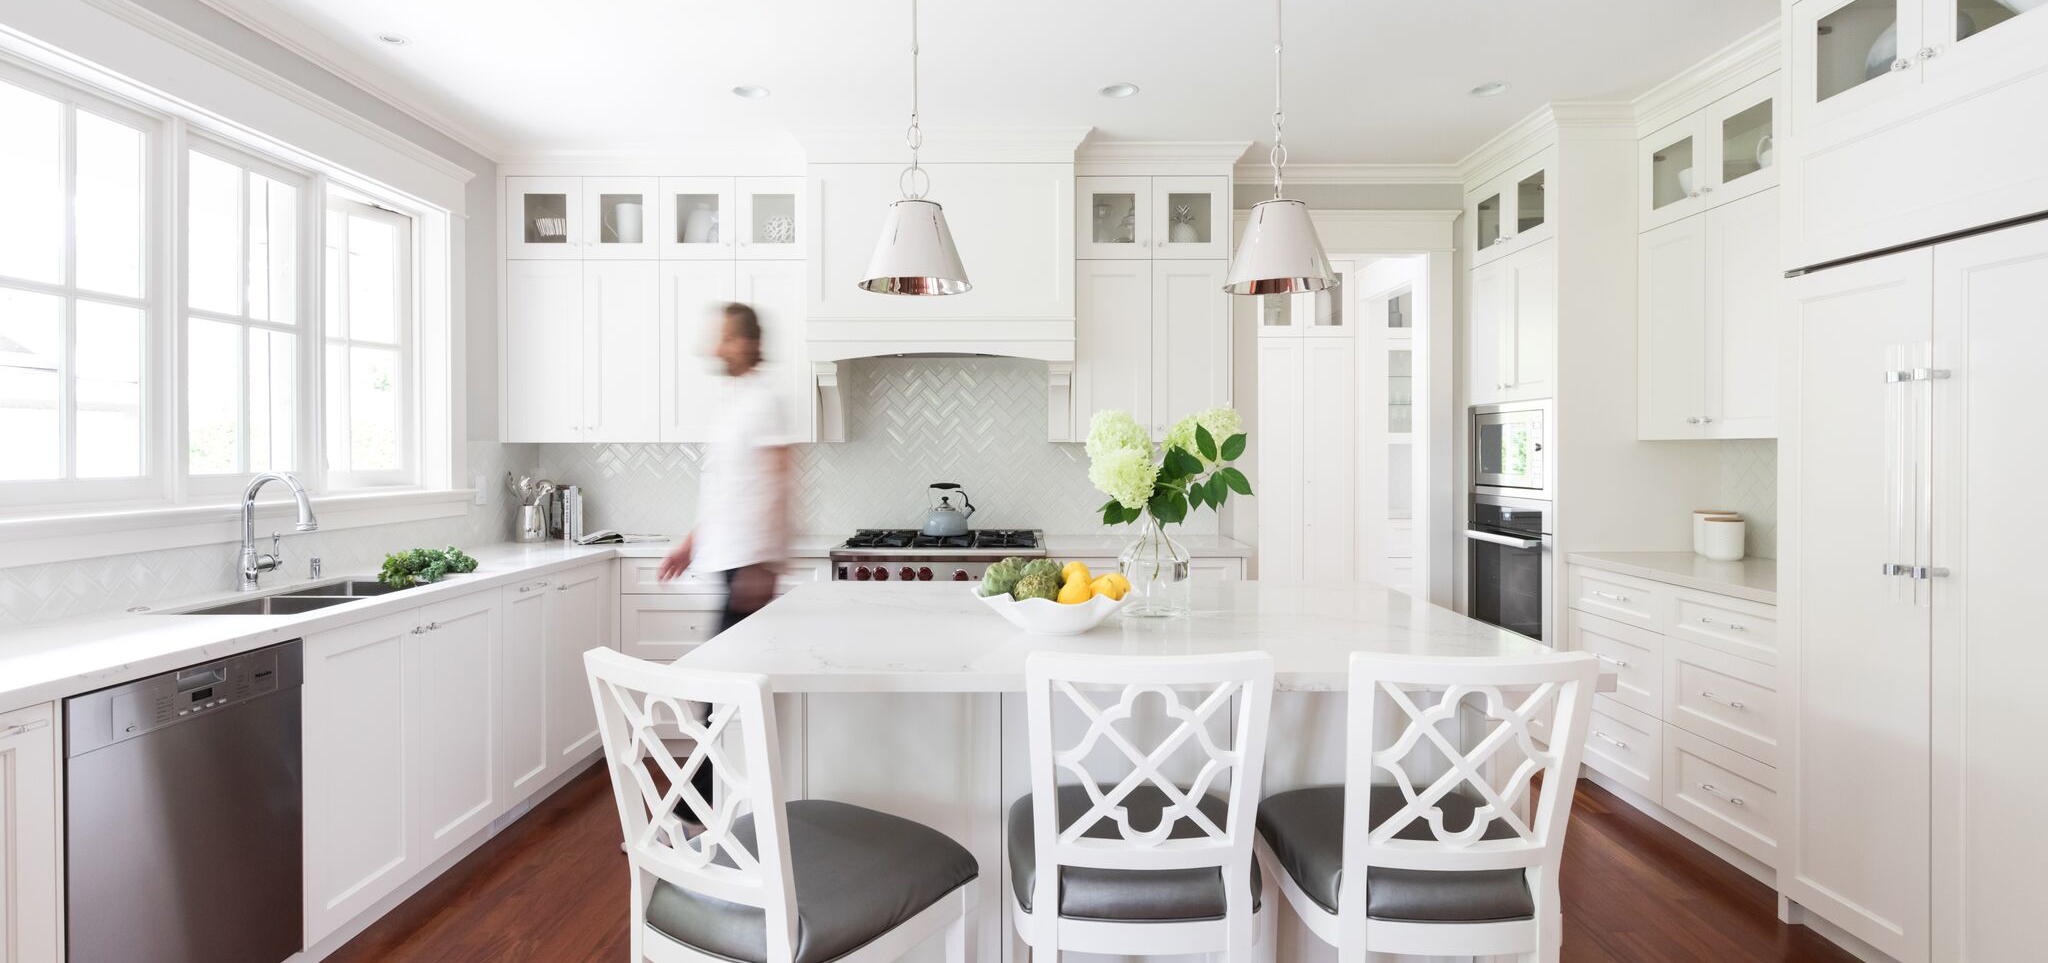 All white kitchen with a center aisle